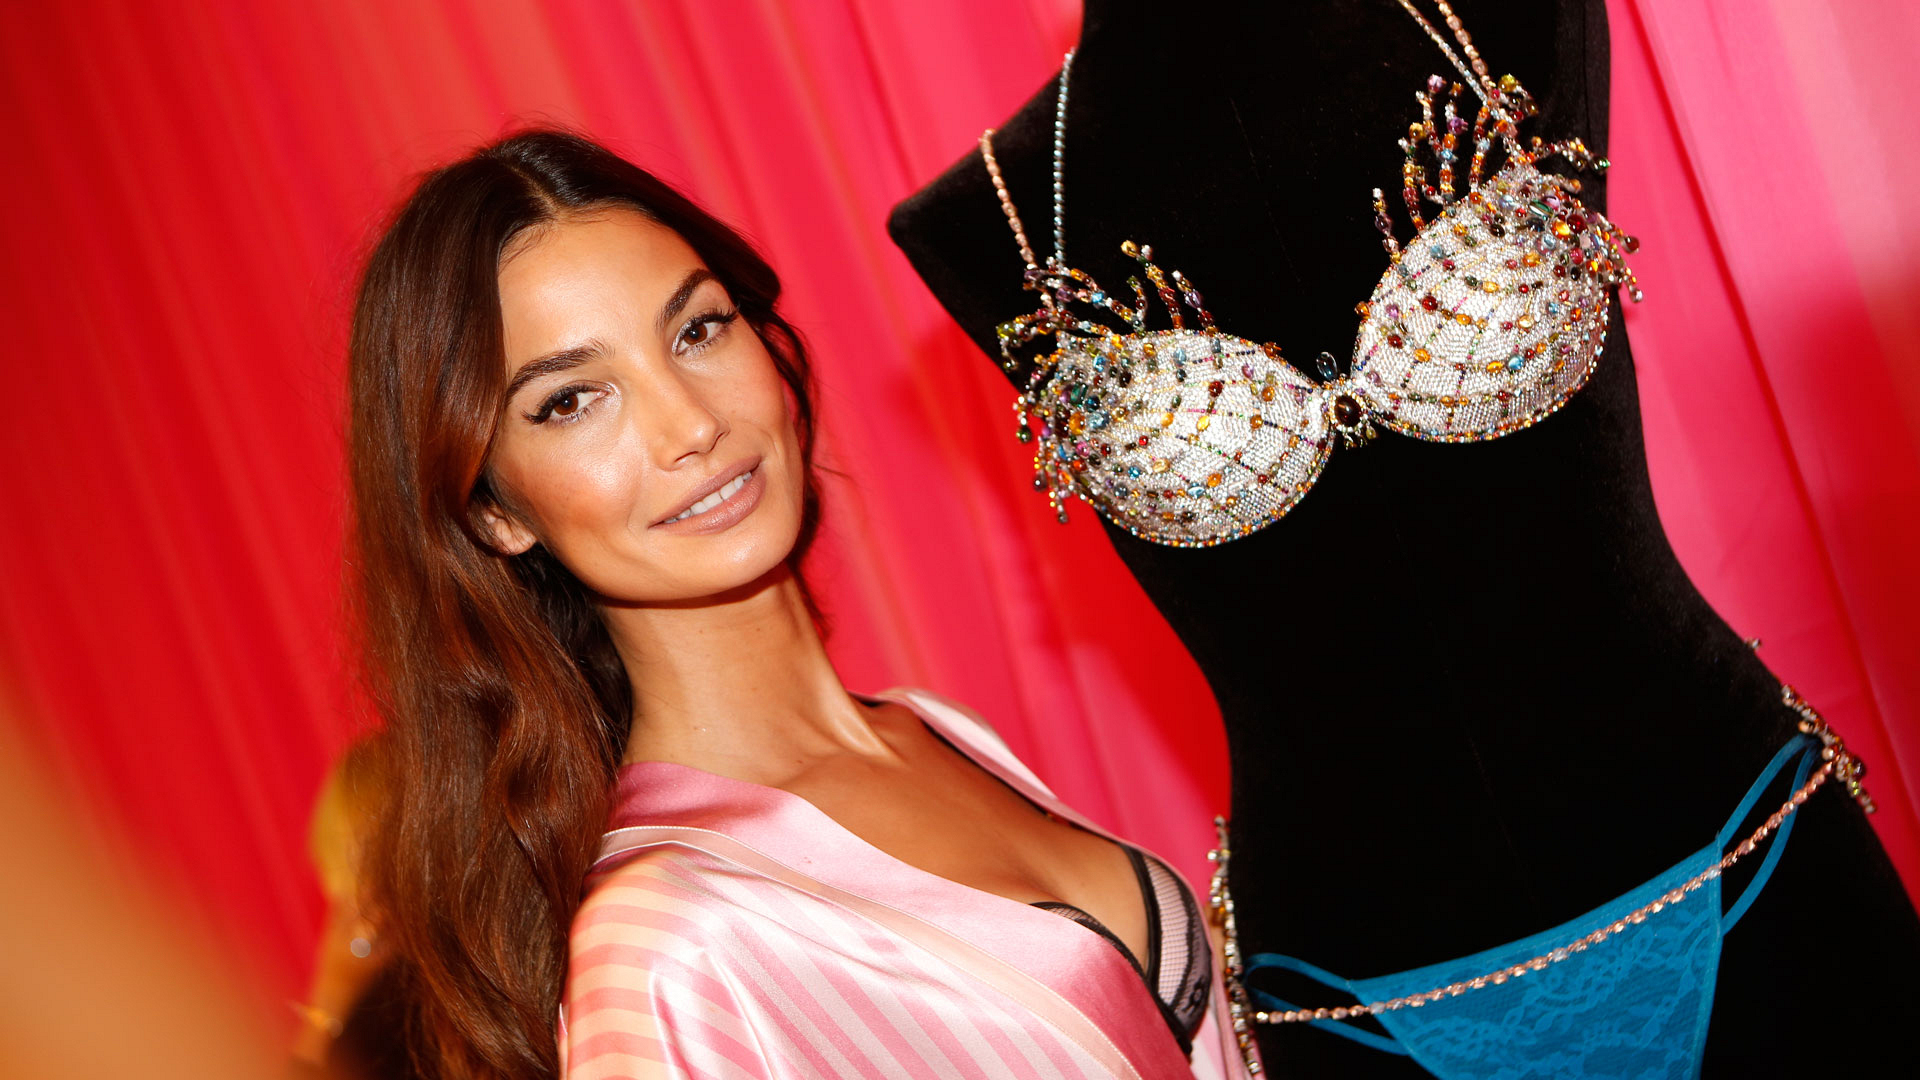 Lily Aldridge glams it up with this year's Fantasy Bra